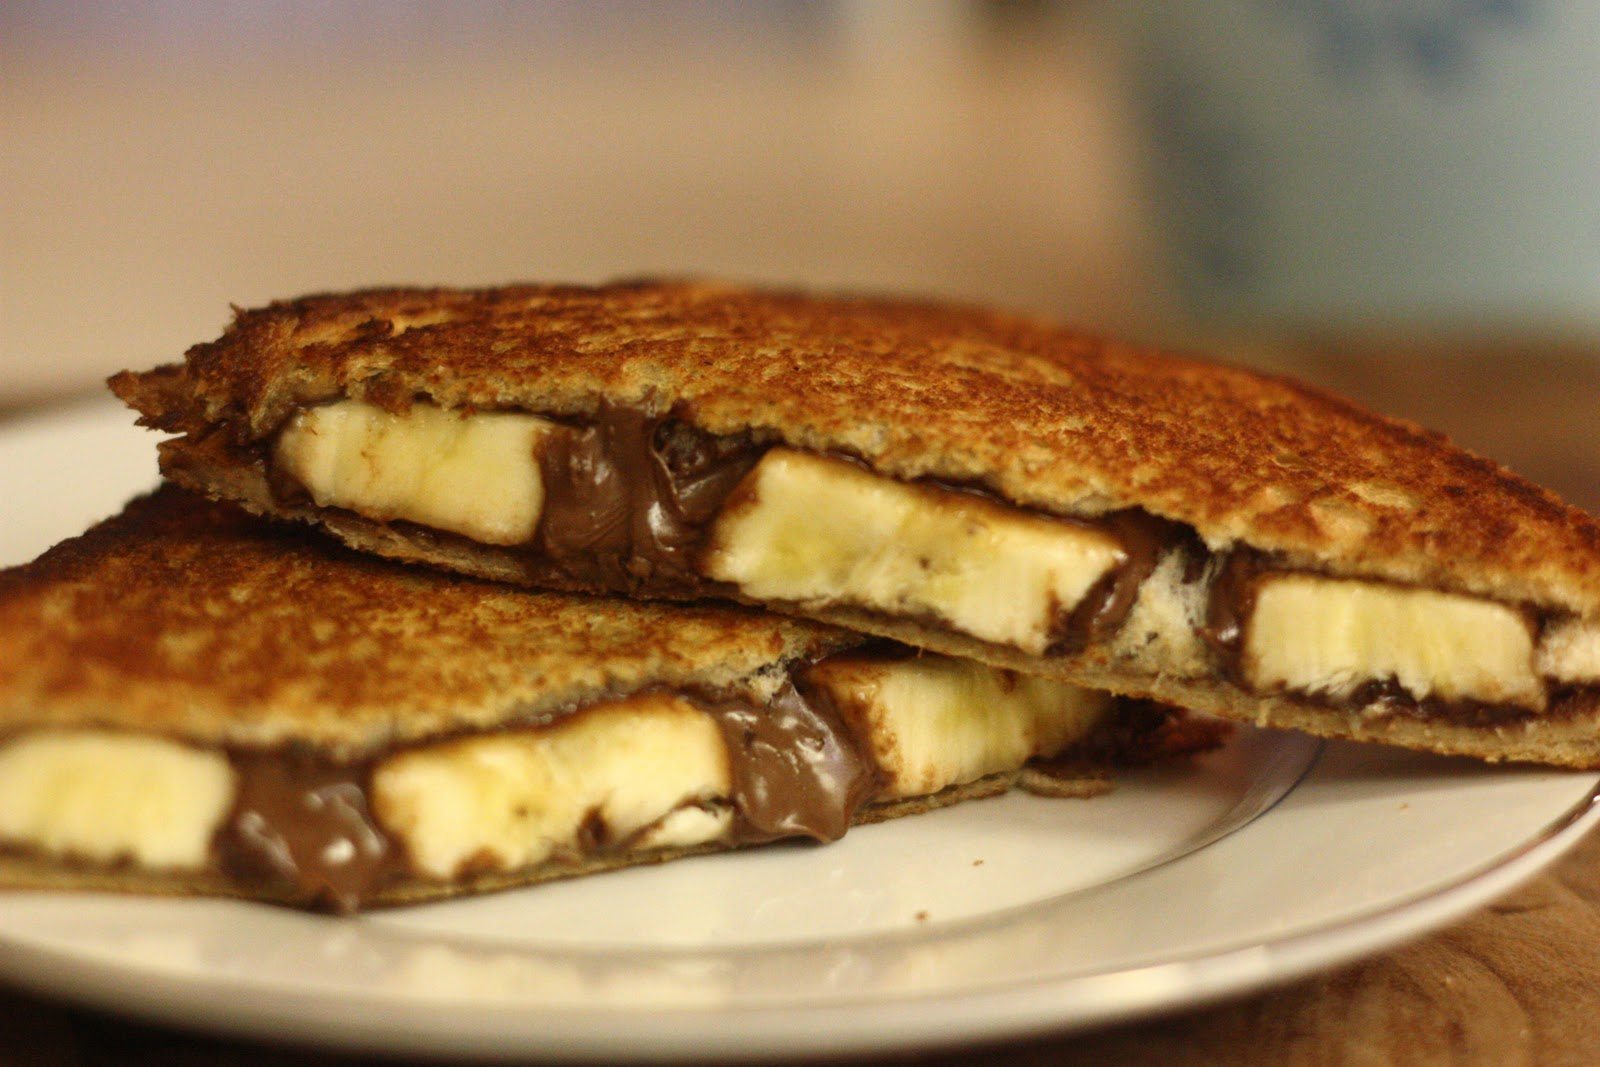 Deeelish By Mish: Grilled Nutella Banana Sandwich